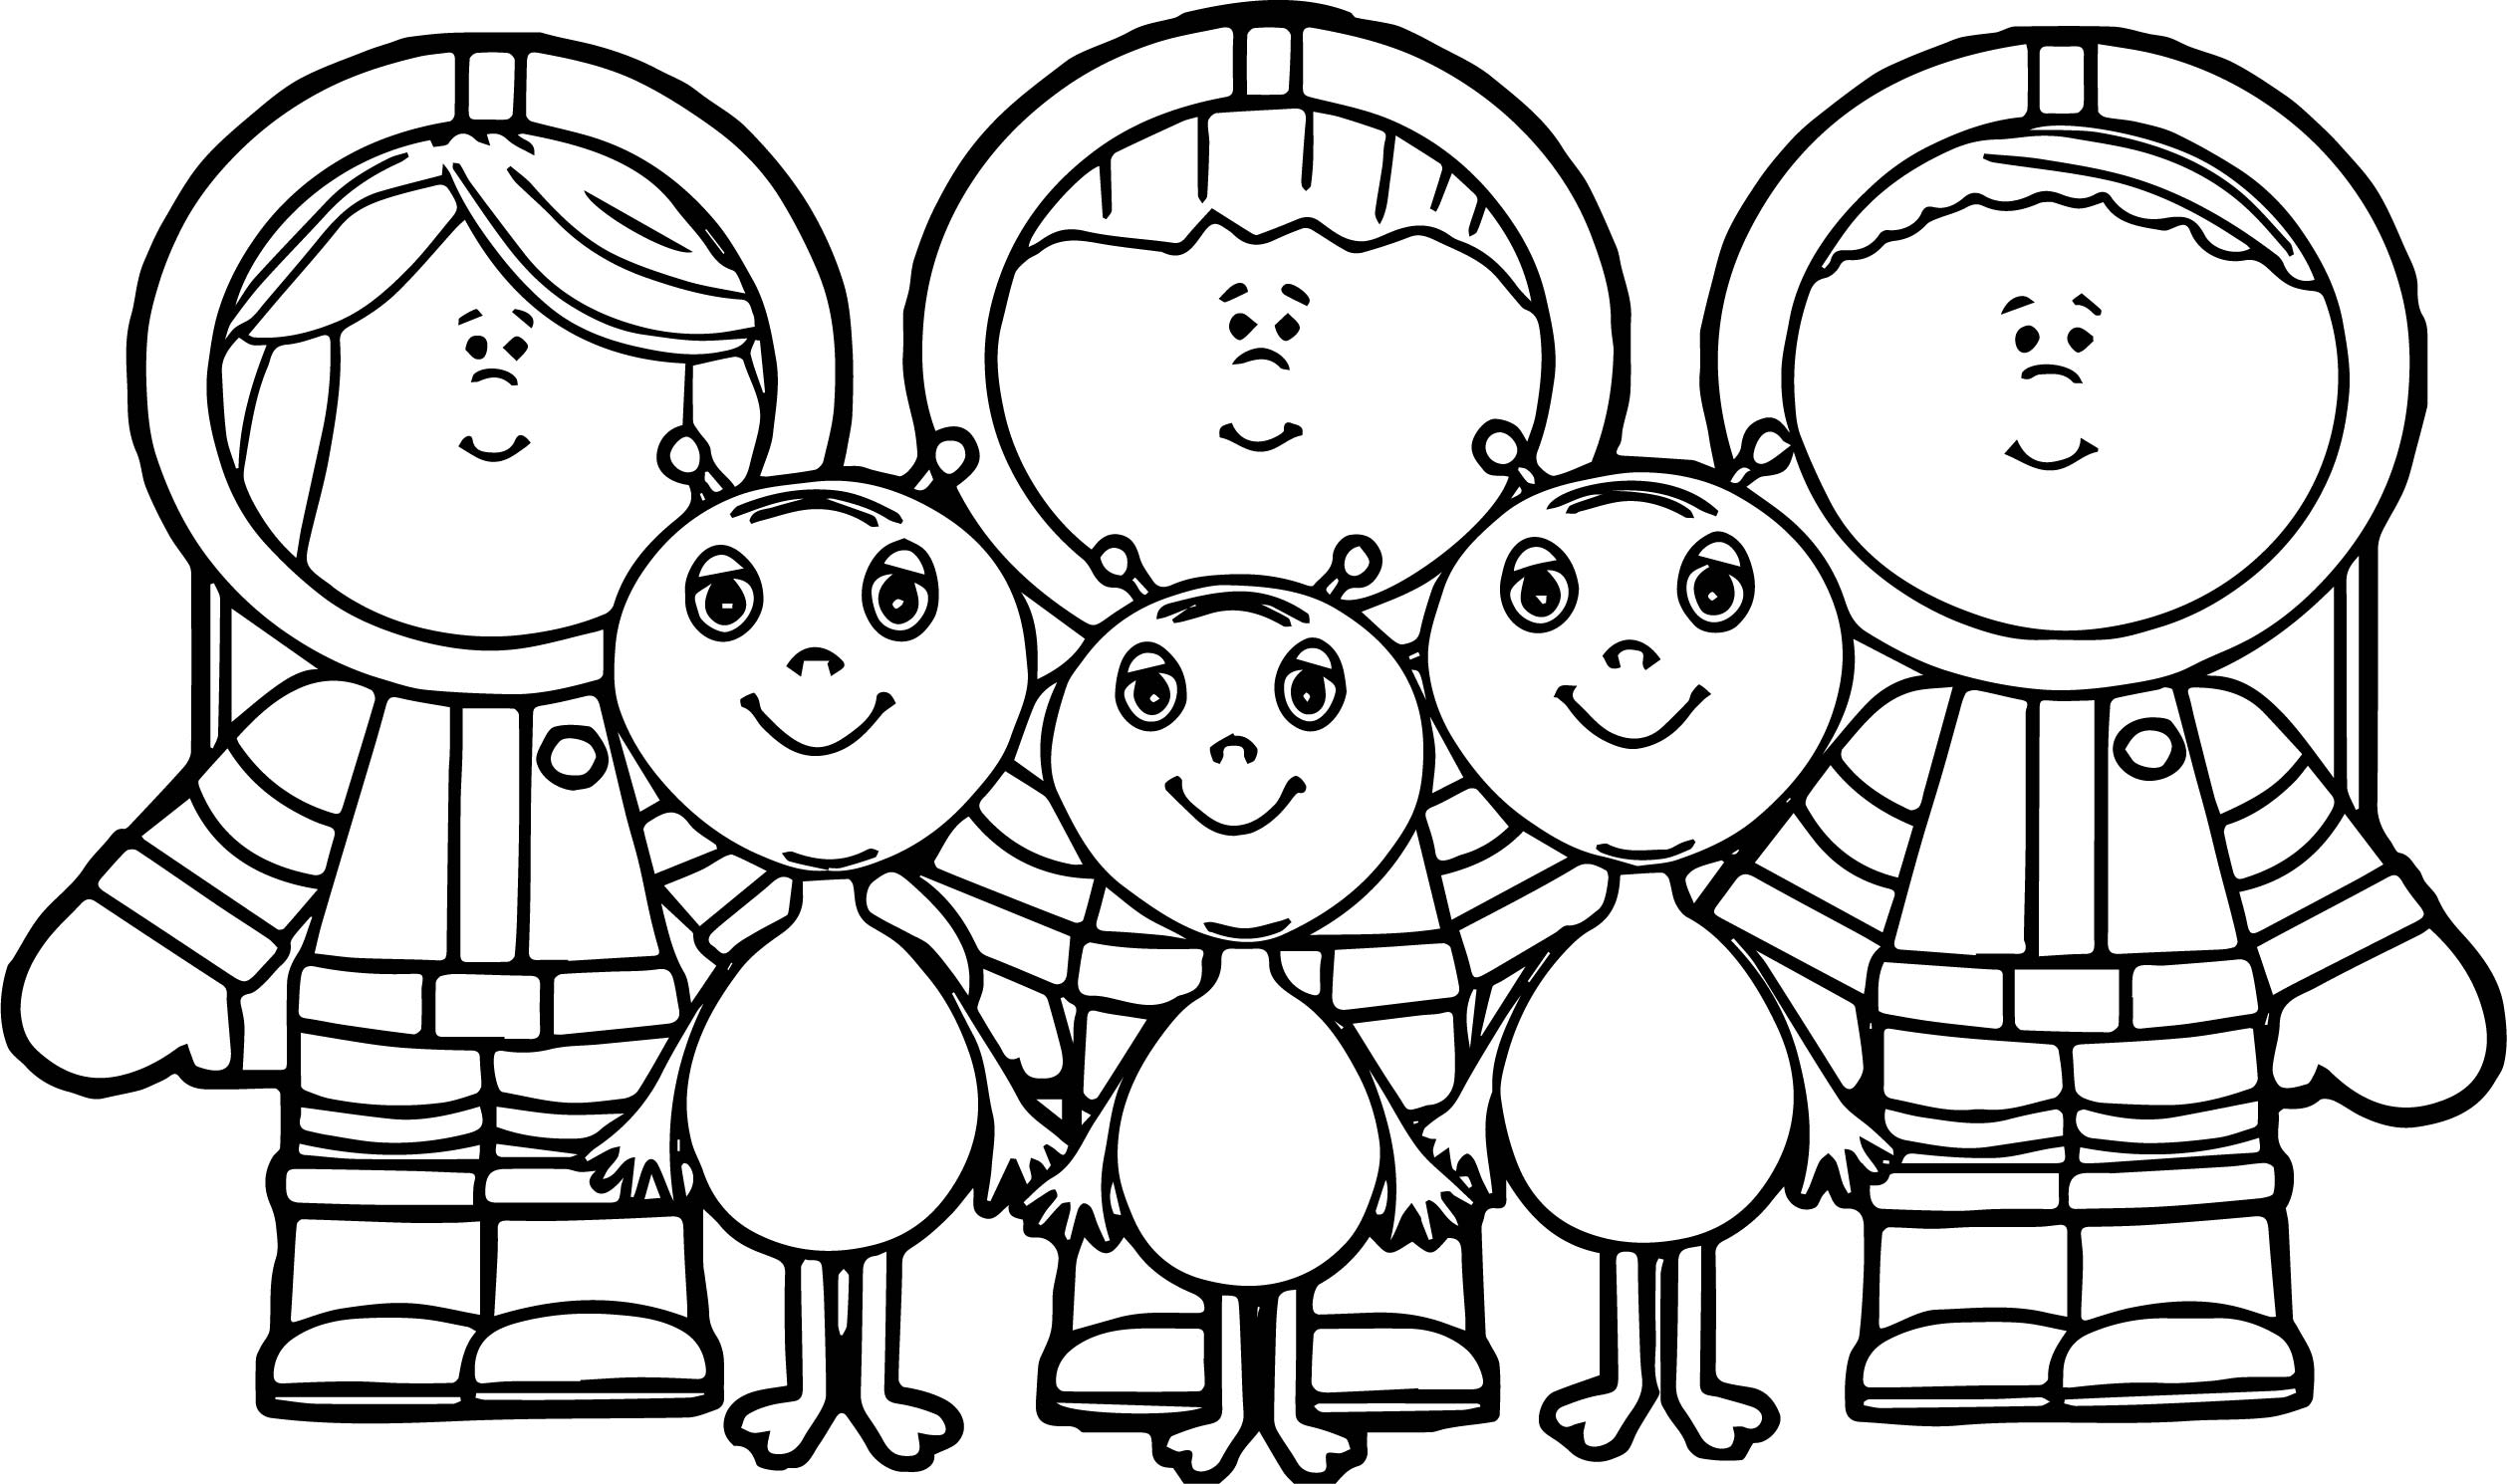 Astronaut Childrens Aliens Coloring Page